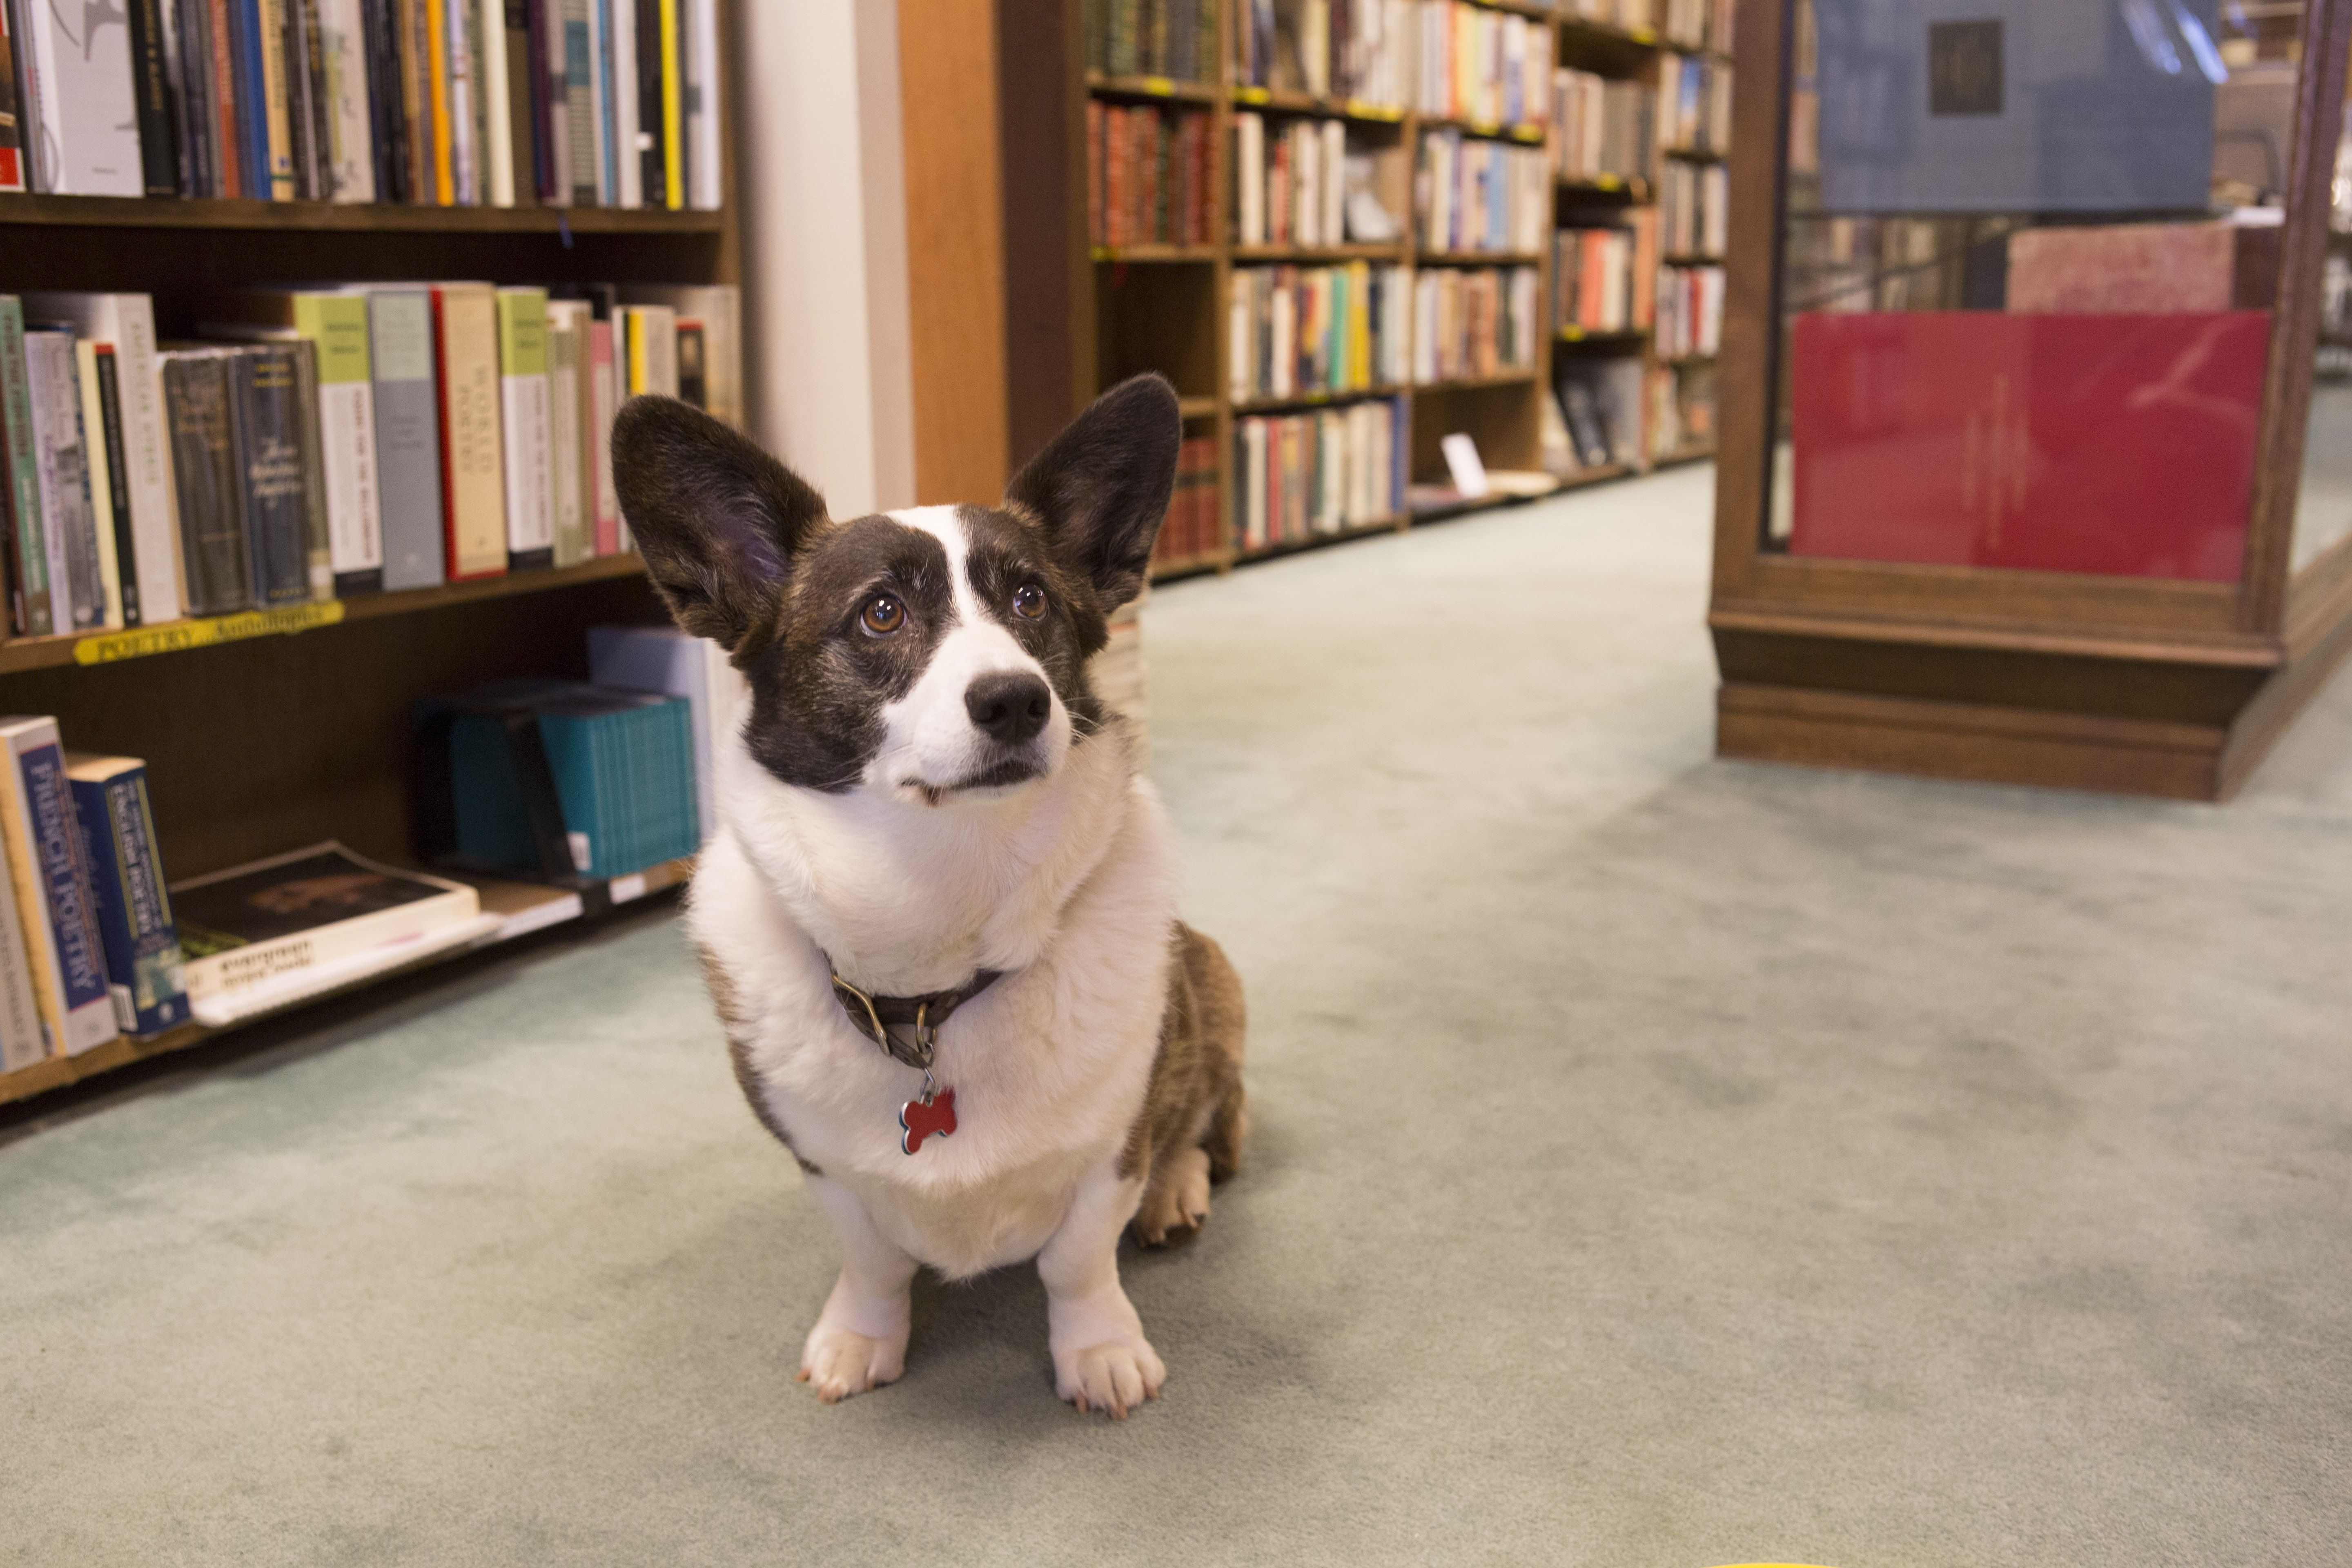 Say Hello To Gizmo From Blue Whale Books Photo By Mina Pirasteh